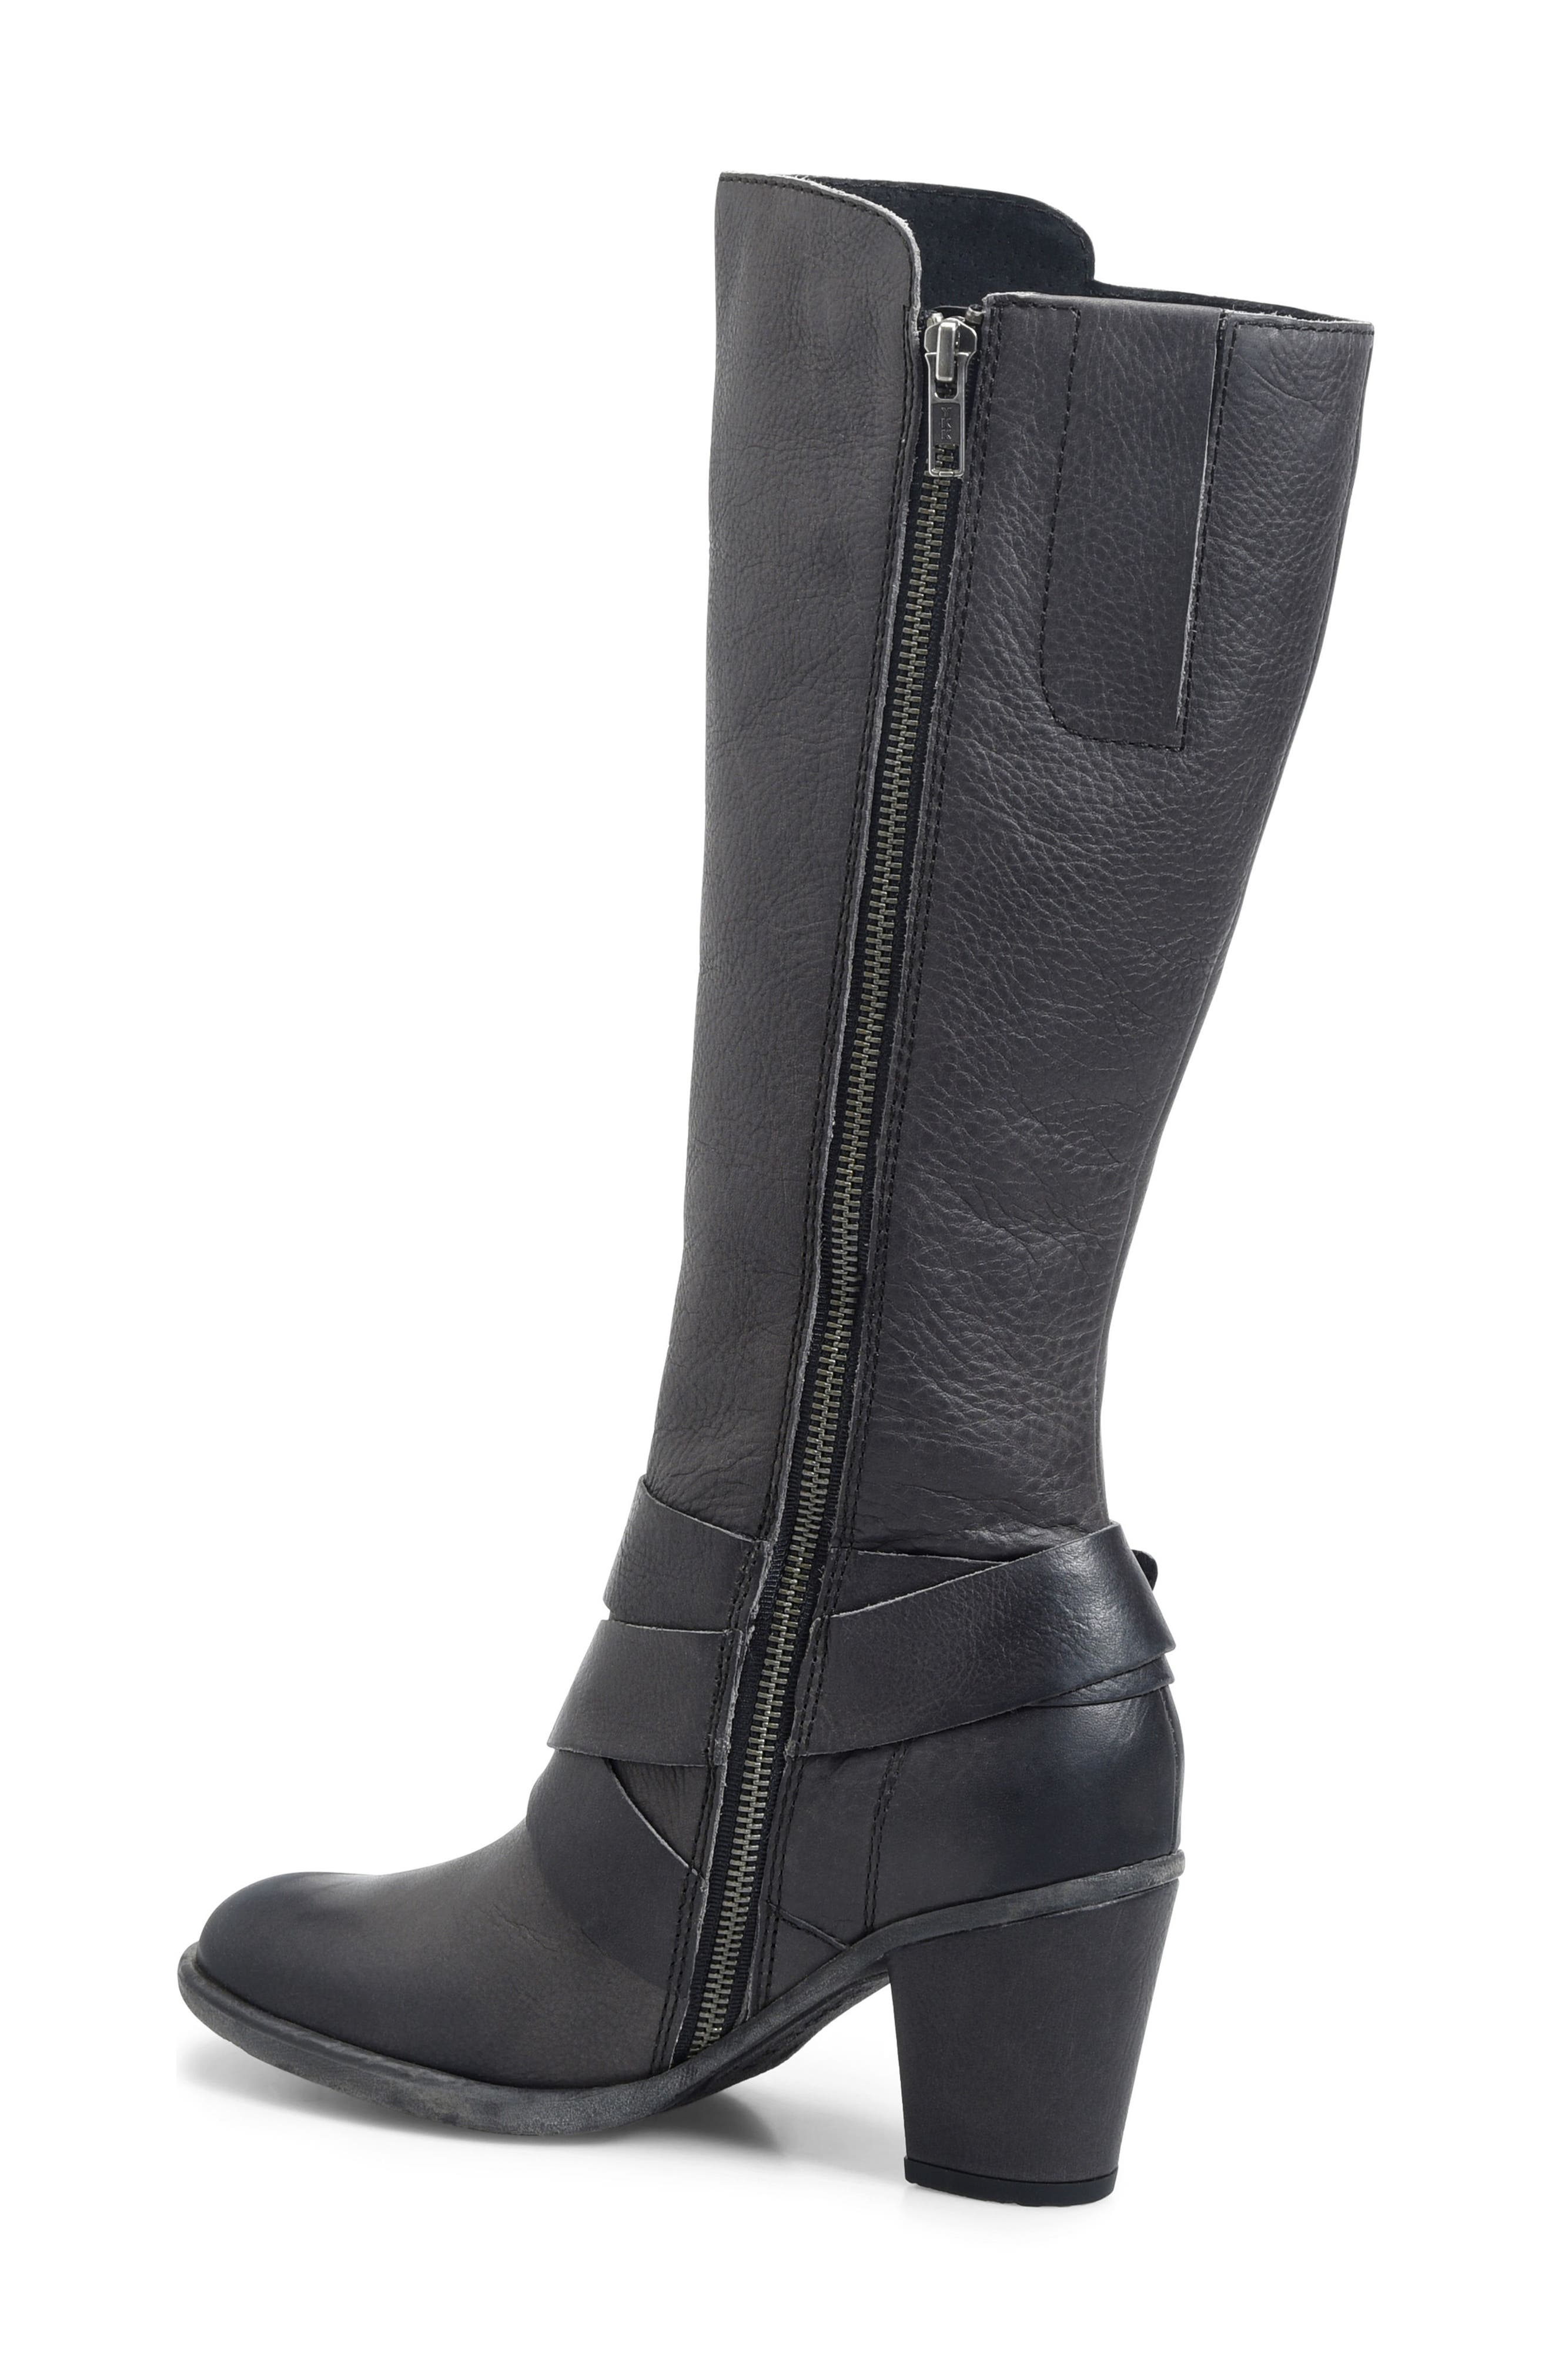 Cresent Knee High Boot,                             Alternate thumbnail 2, color,                             026